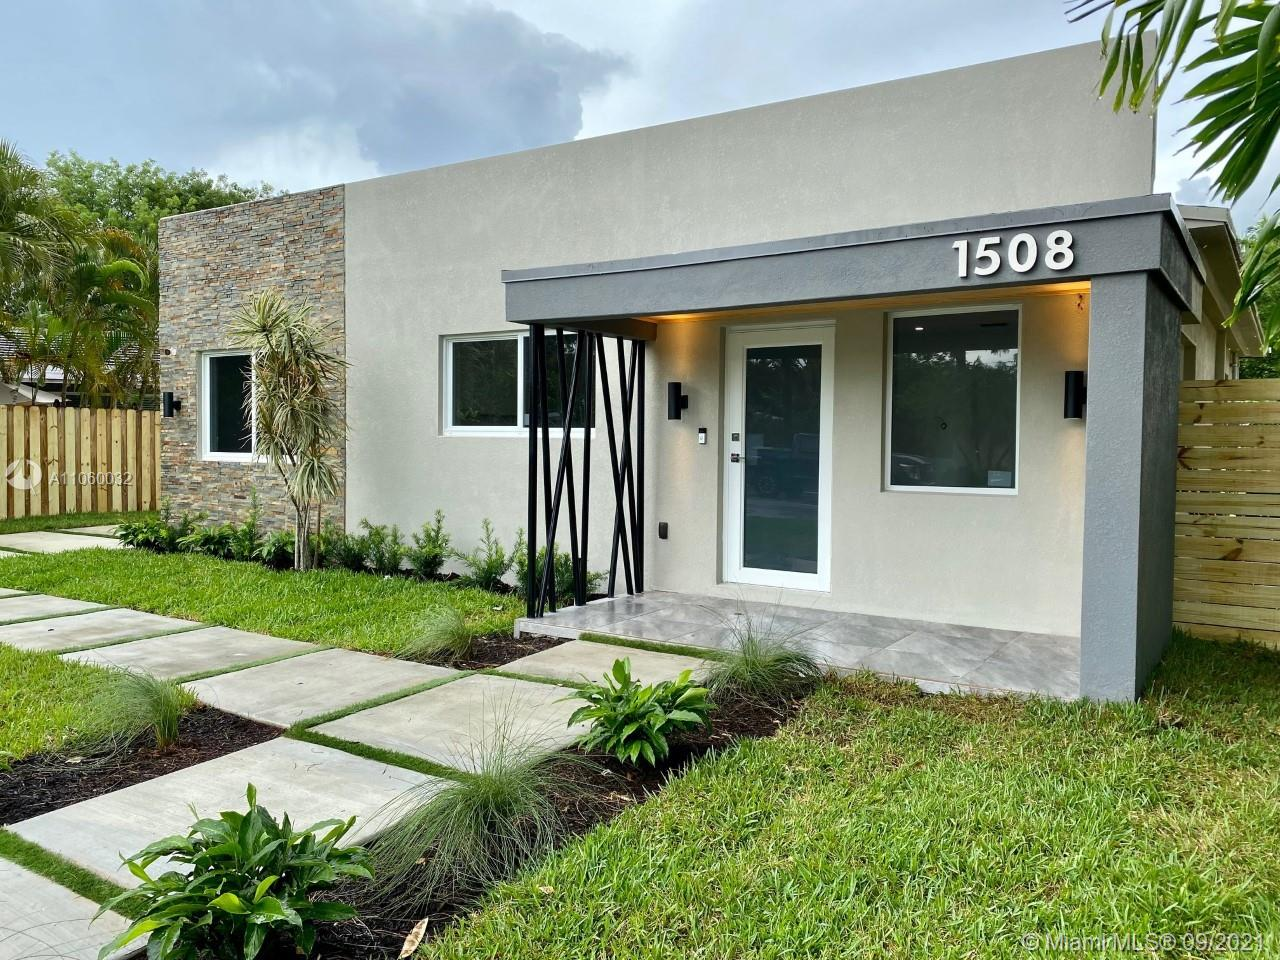 Poinsettia Heights, 1508 NE 18th St, Fort Lauderdale, Florida 33305